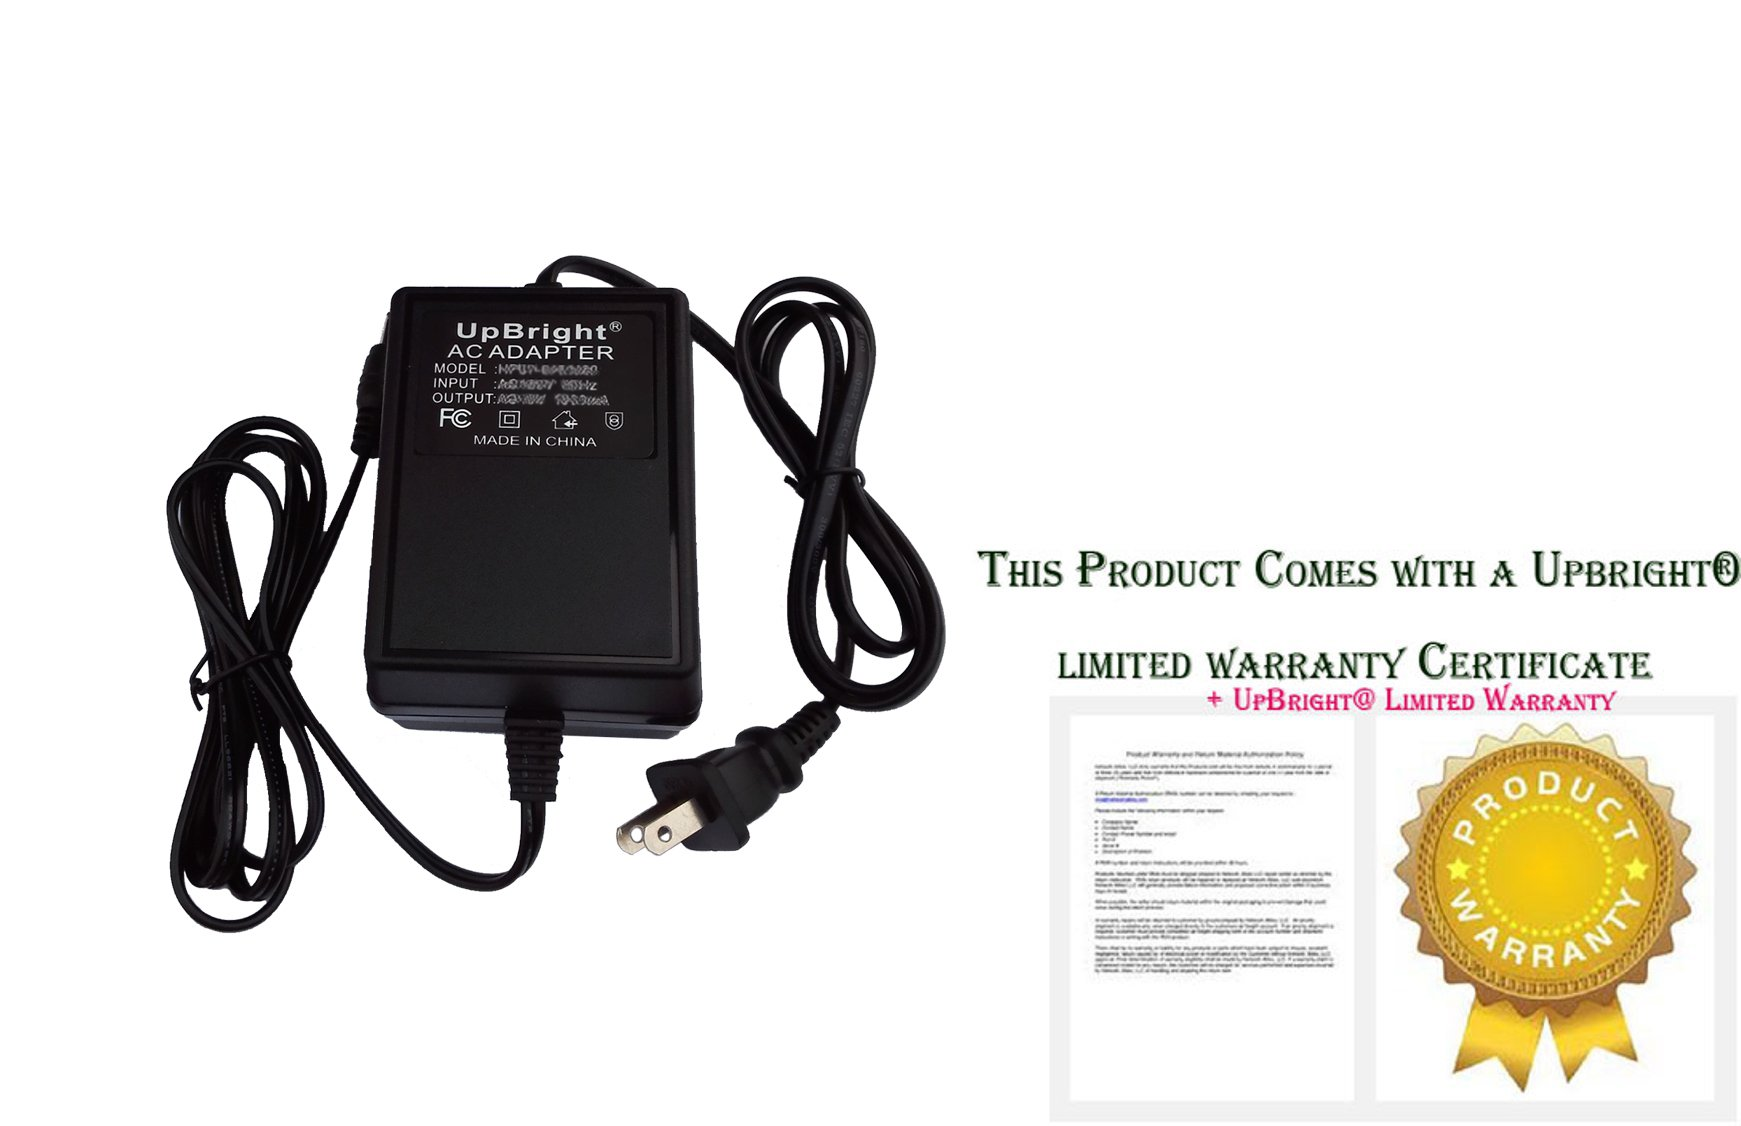 UpBright AC Adapter For Tectrix Fitness Equipment Personal Stair Climber Part # 13010 13013 326-4010-001B3 9347RB Ault Inc 10 VAC 40 VA 10VAC 40VA 10V - 12V Plug-In Class 2 Transformer Power Supply by UPBRIGHT (Image #1)